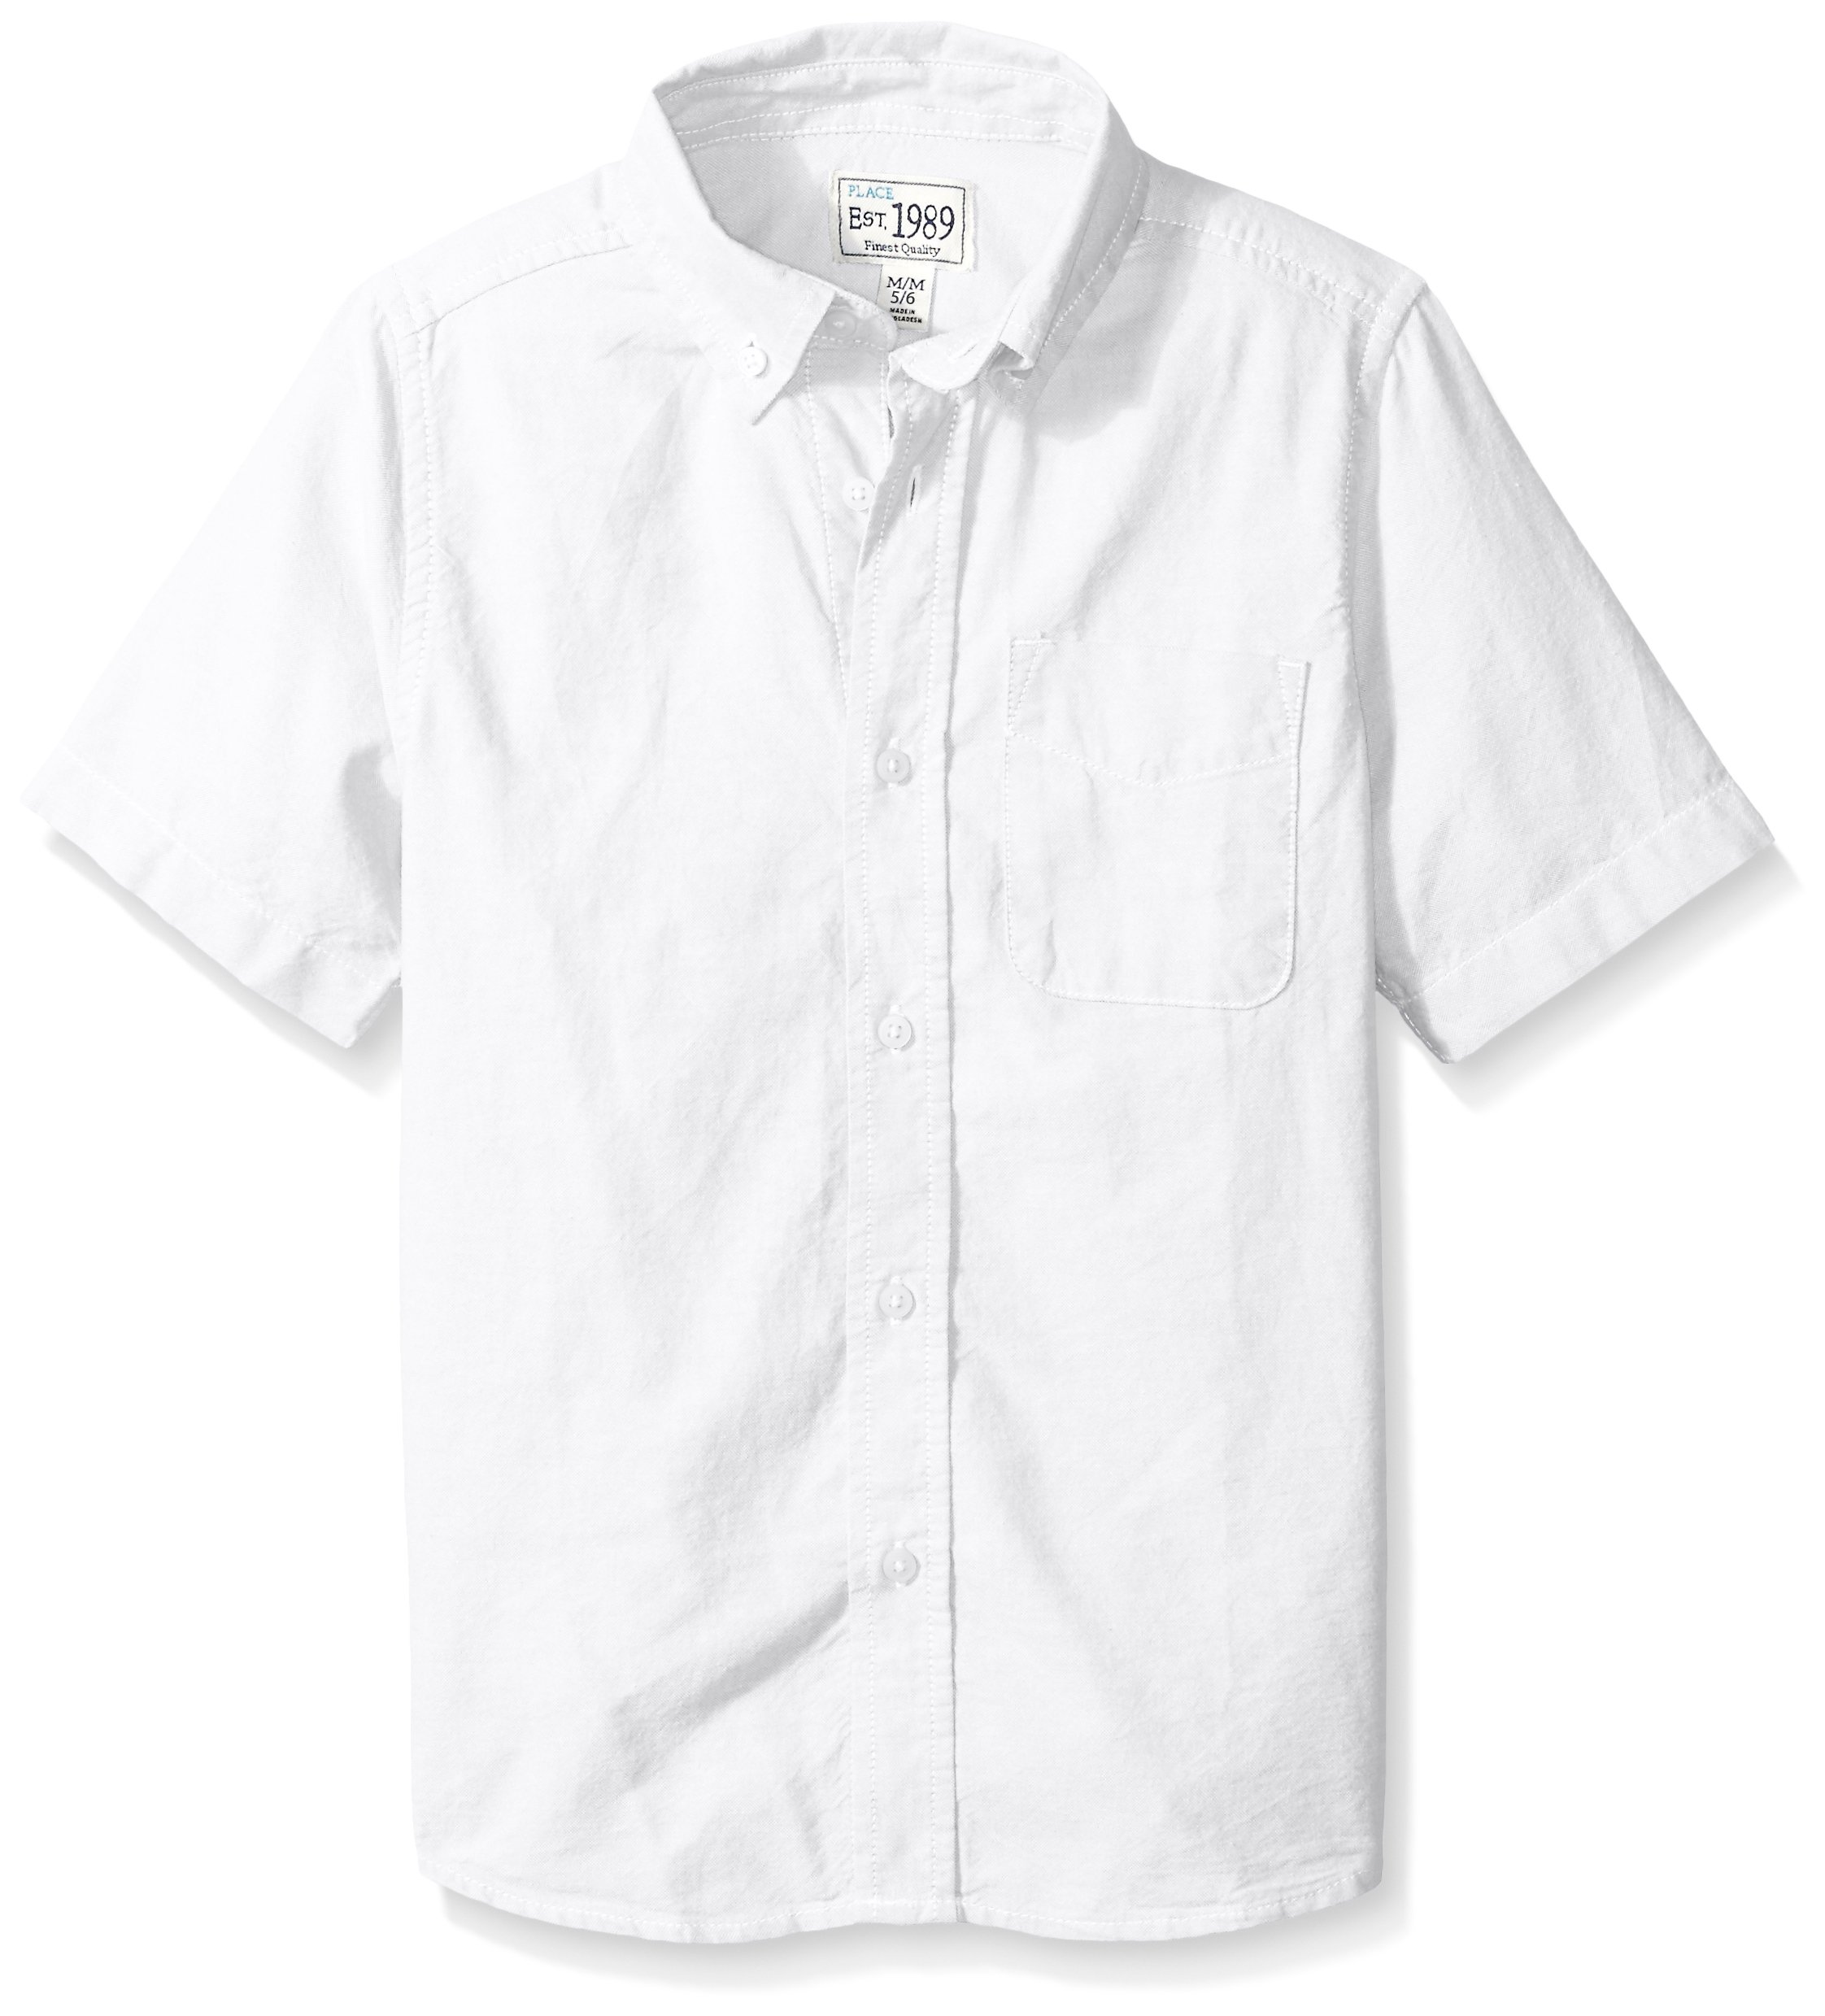 The Children's Place Boys' Big Short Sleeve Uniform Oxford Shirt, White 4765, Large/10/12